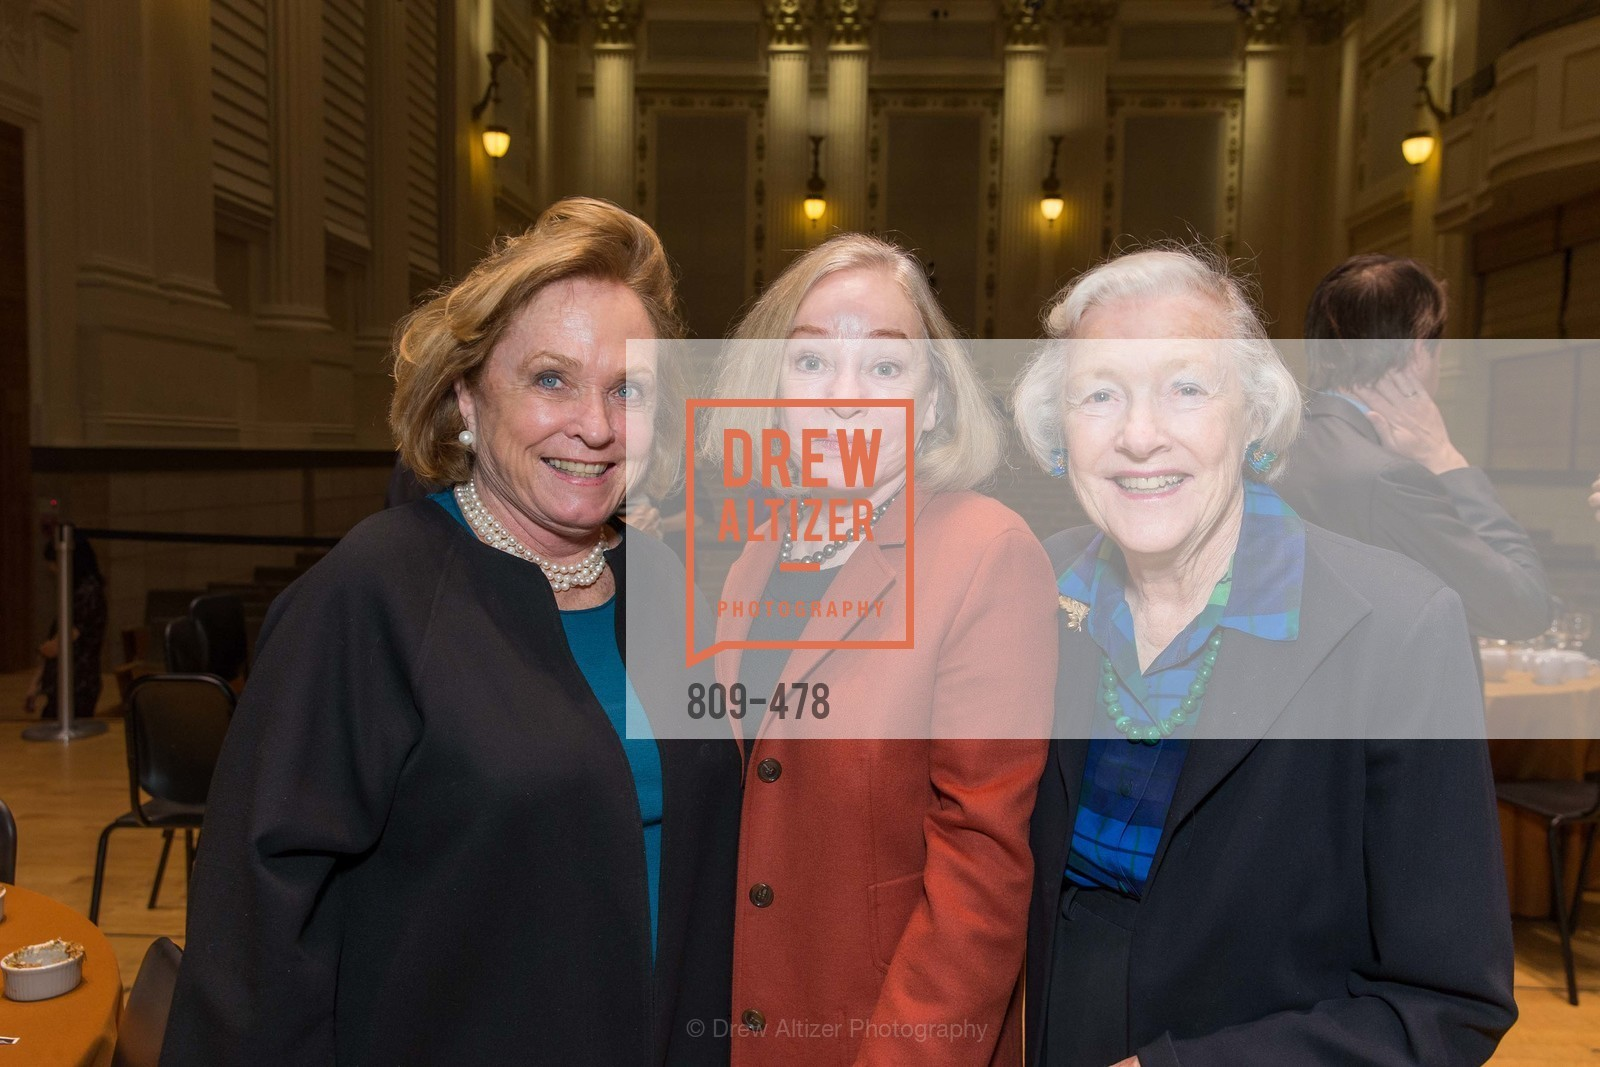 Maura Morey, Gretchen Kimball, Marianne Peterson, SAN FRANCISCO CONSERVATORY OF MUSIC'S 2014 Fanfare Luncheon, US. Conservatory of Music, January 24th, 2014,Drew Altizer, Drew Altizer Photography, full-service agency, private events, San Francisco photographer, photographer california